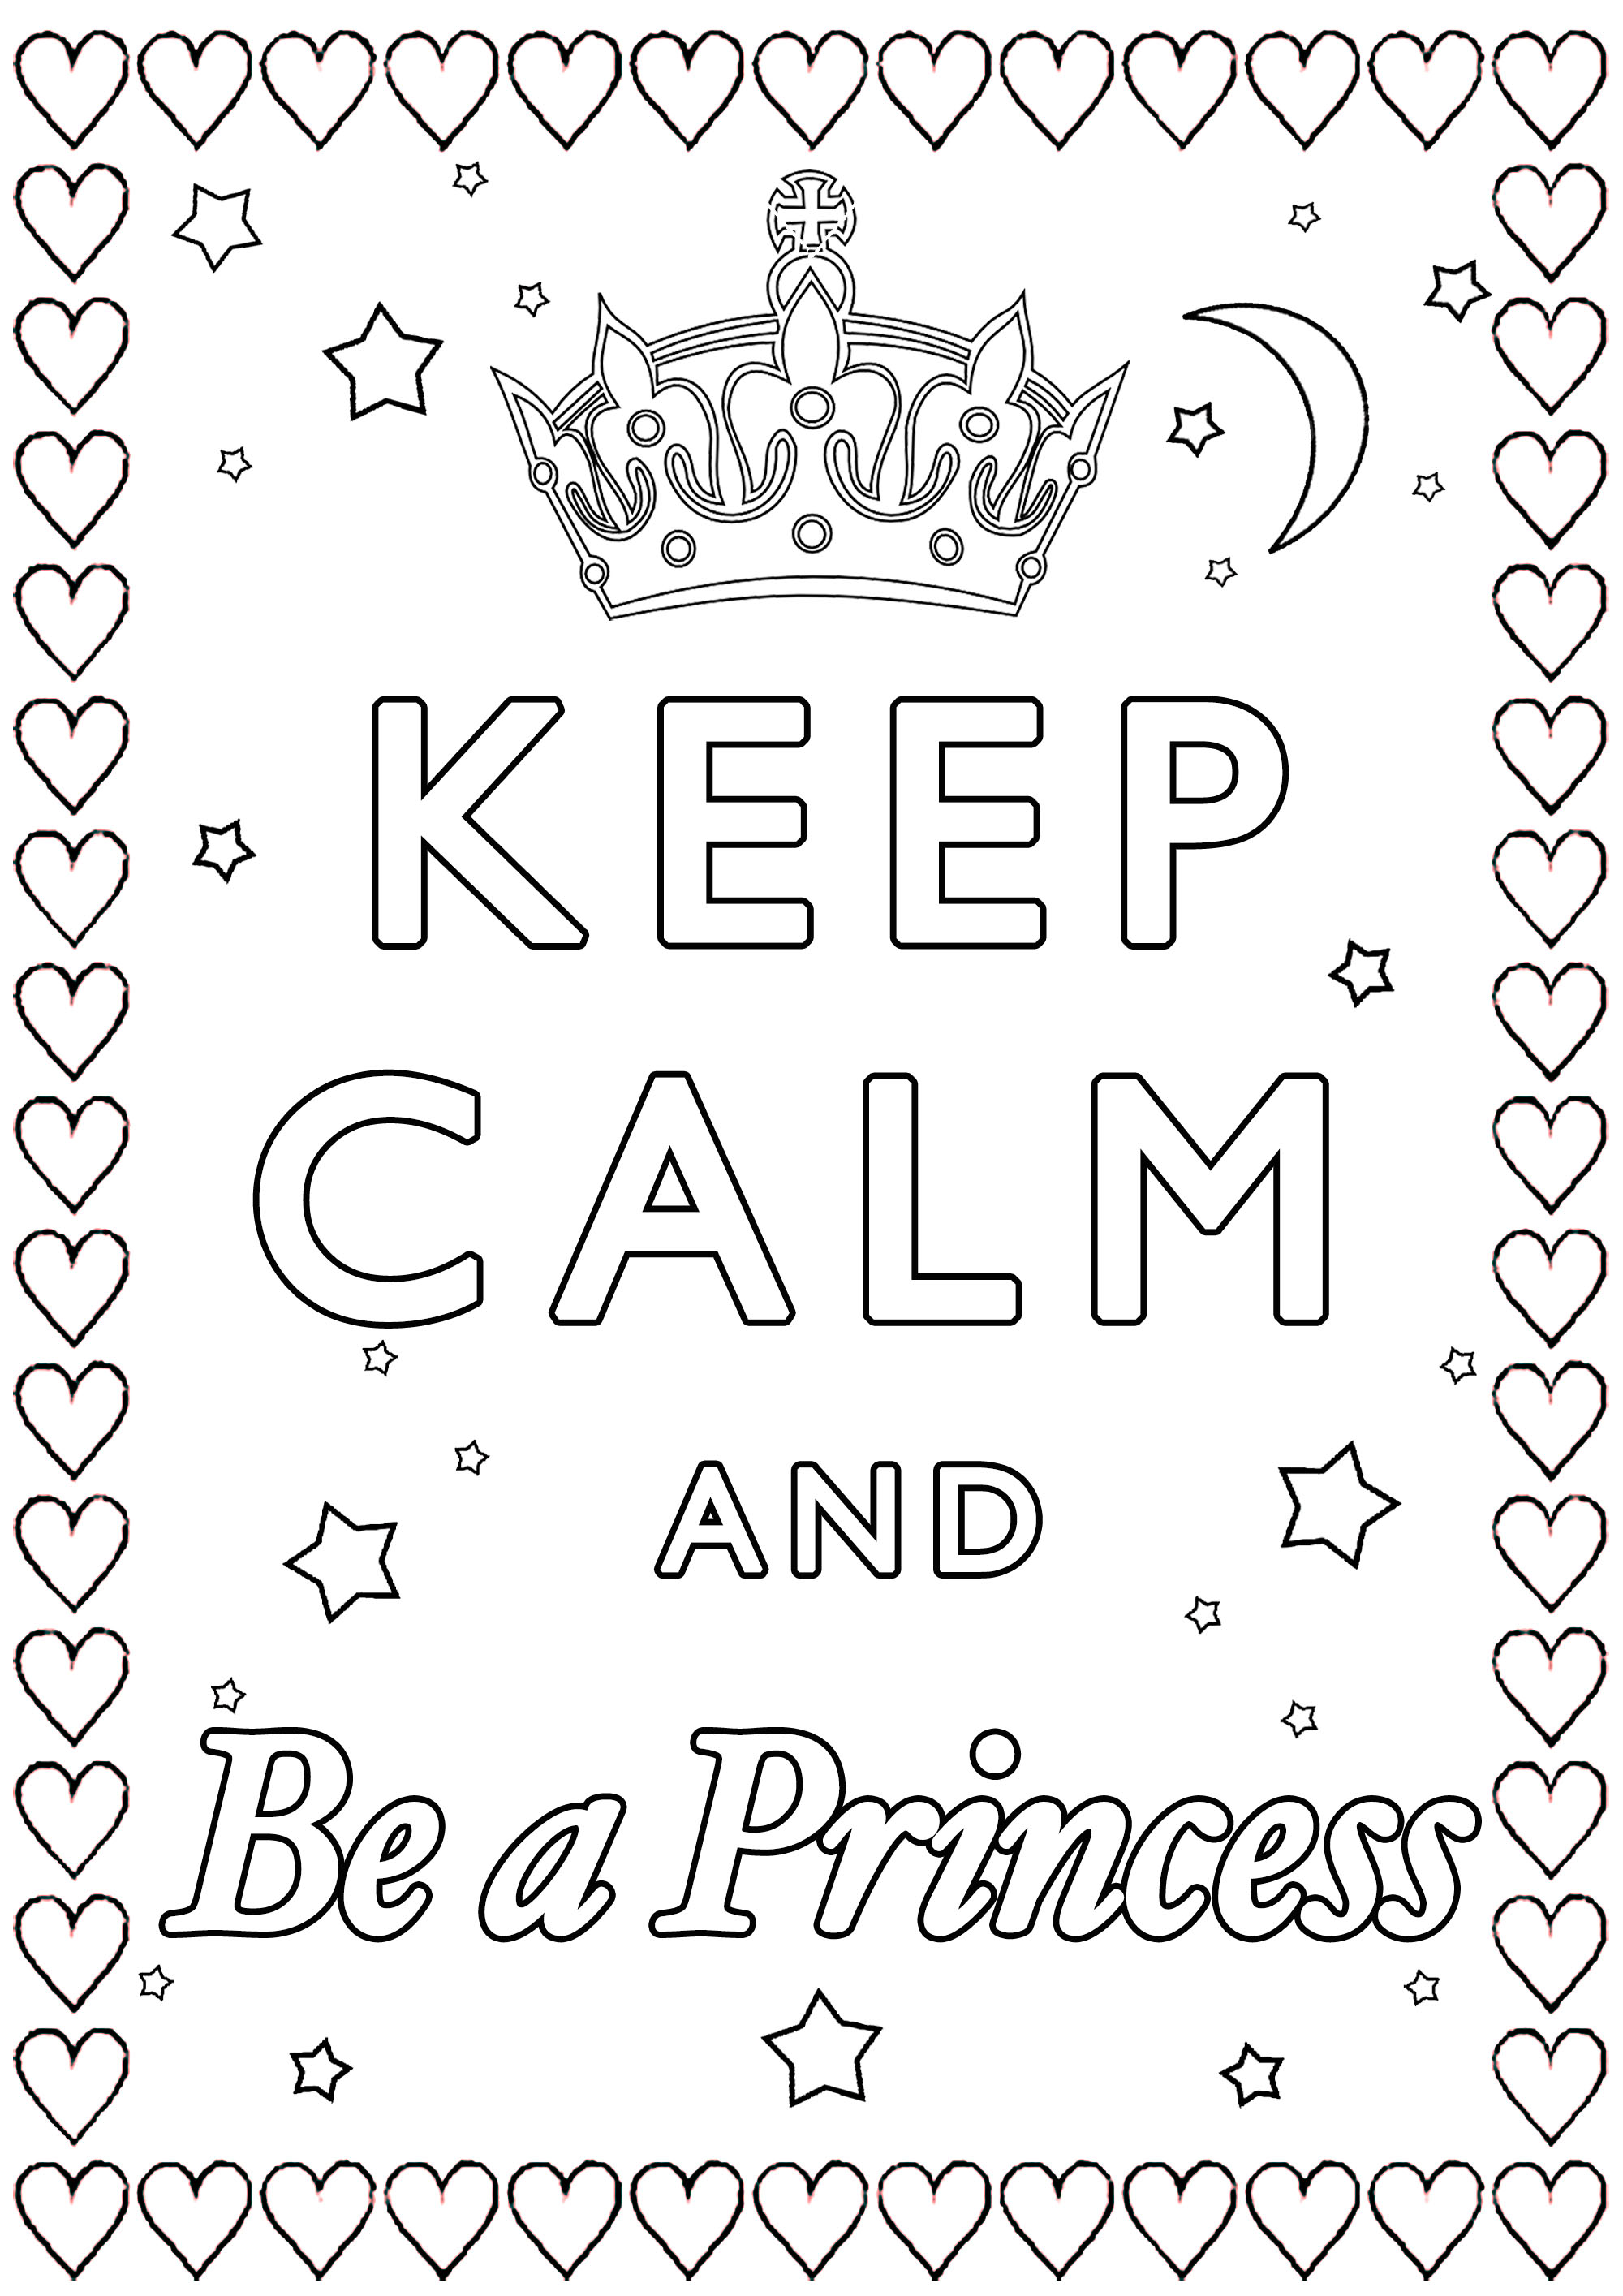 Keep Calm and be a Princess : Are you ready to enter in the world of dreams ?